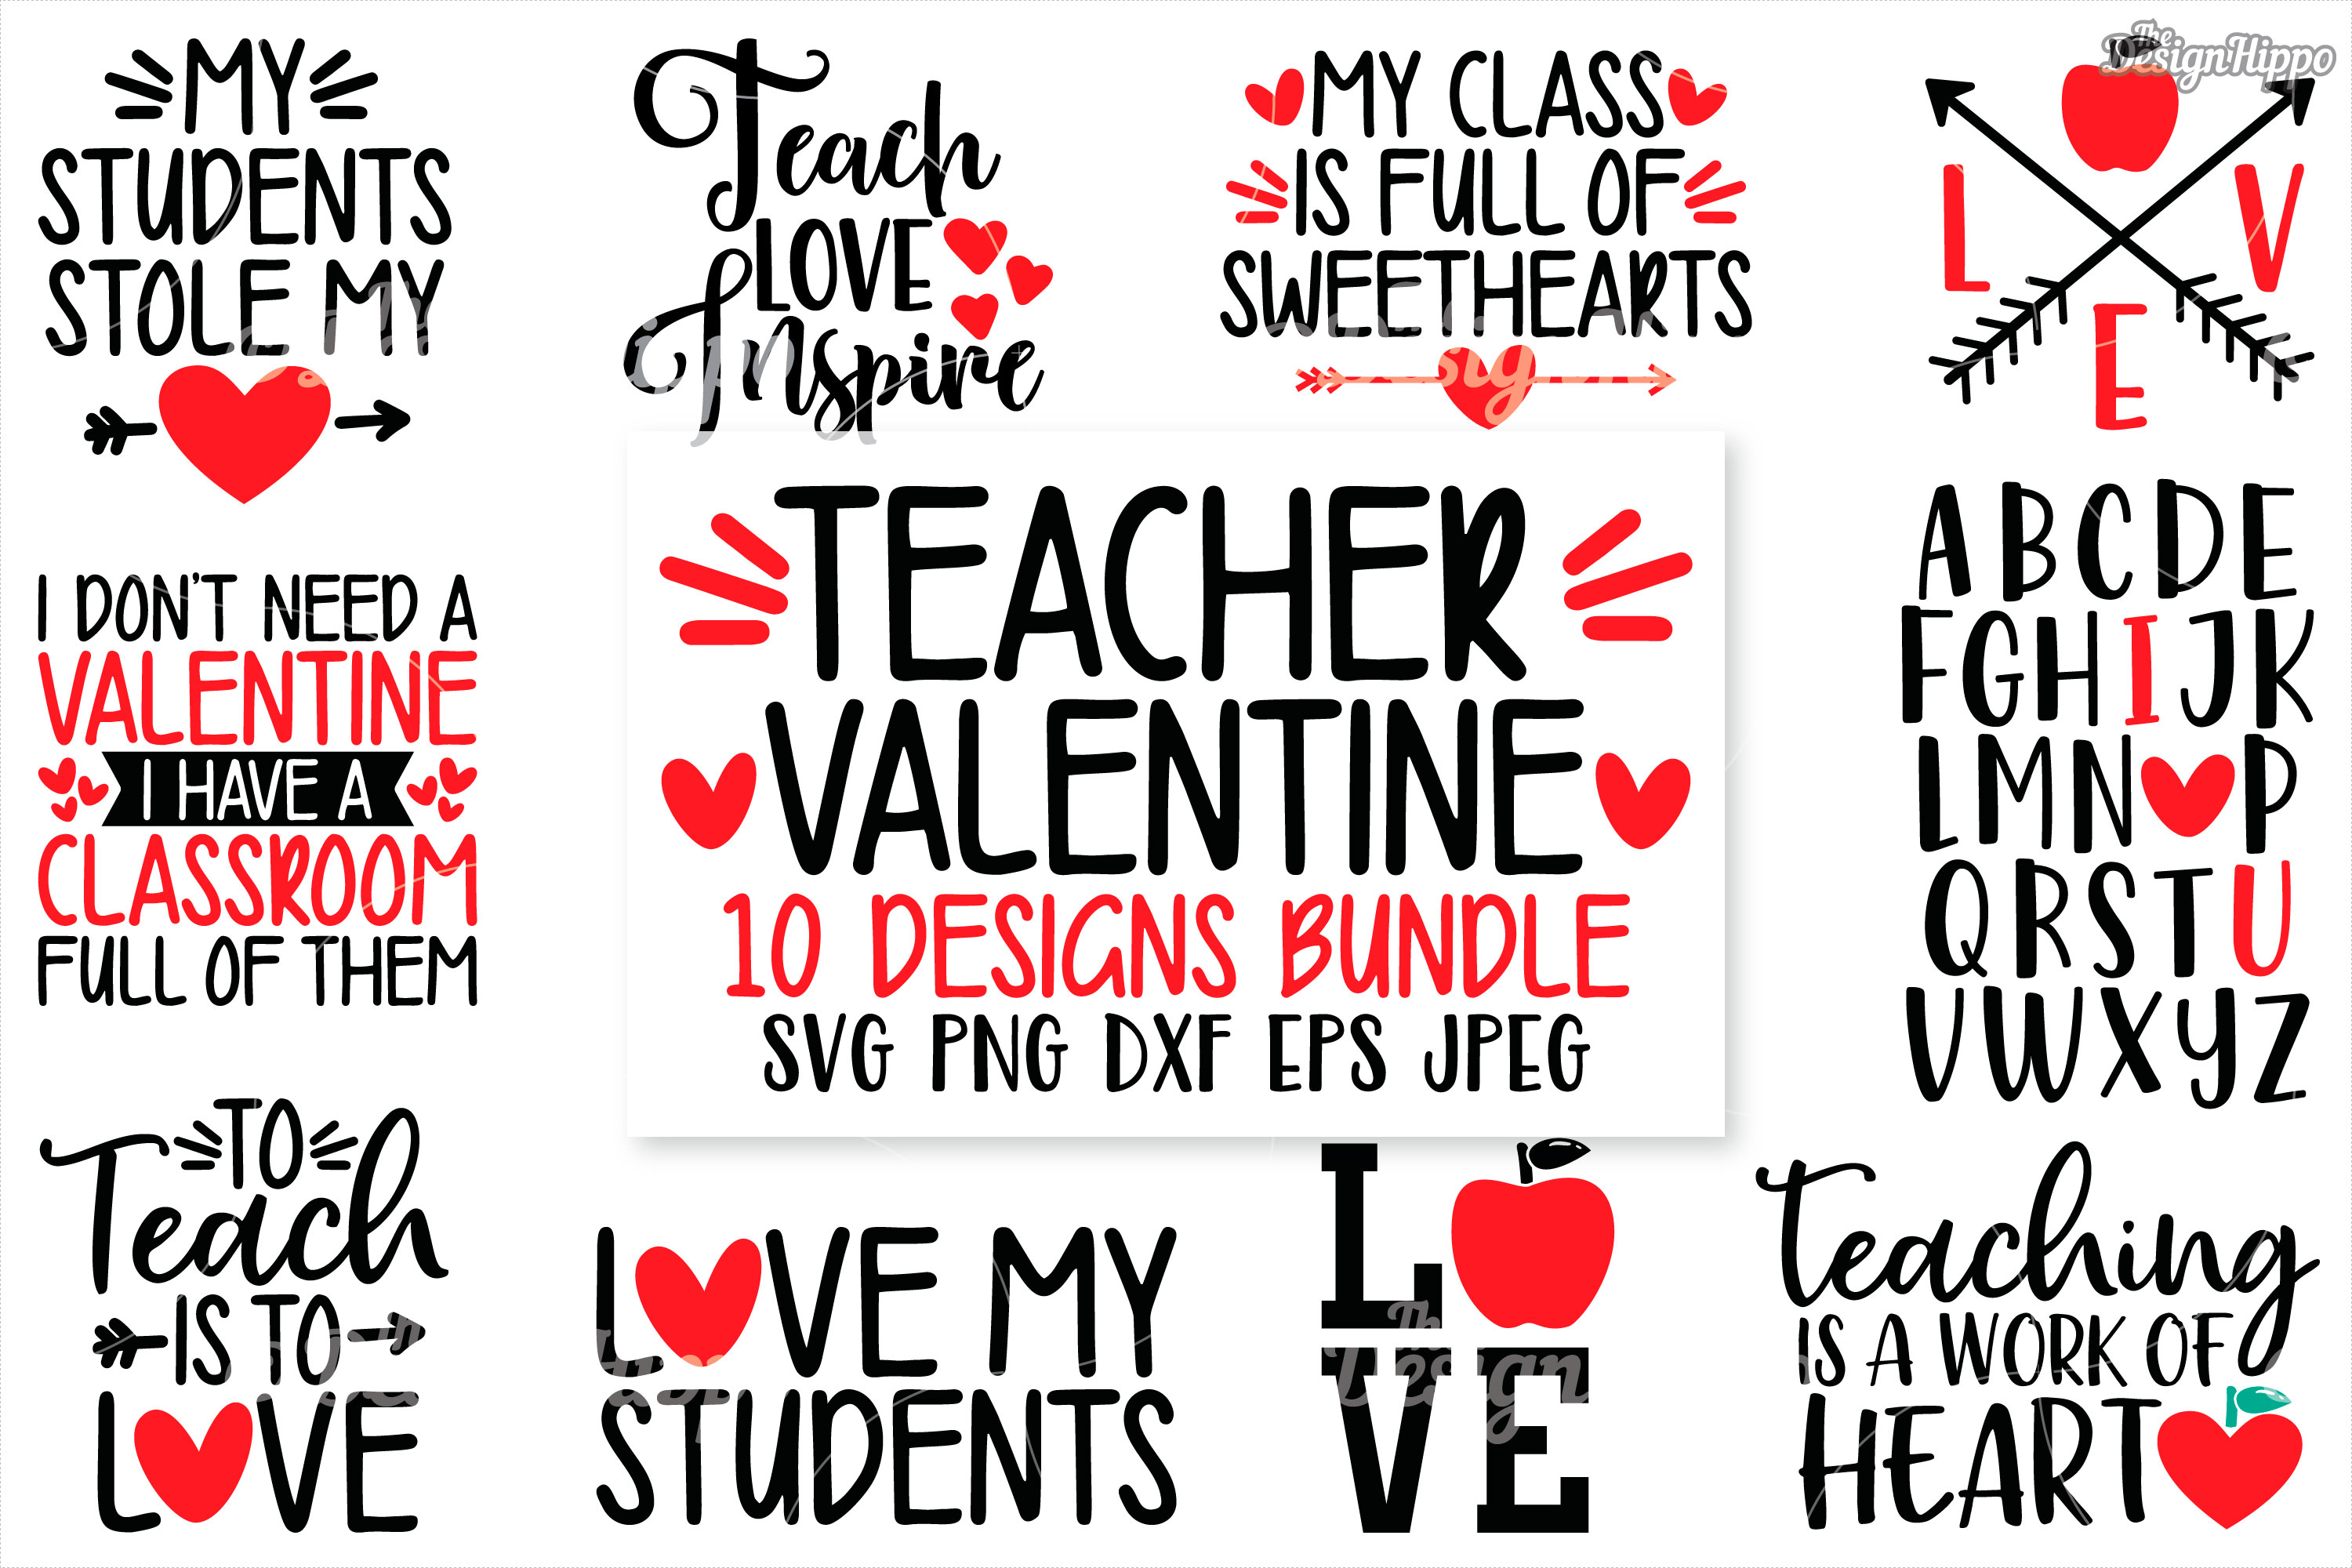 Download Free Teacher Valentine Bundle Graphic By Thedesignhippo Creative for Cricut Explore, Silhouette and other cutting machines.